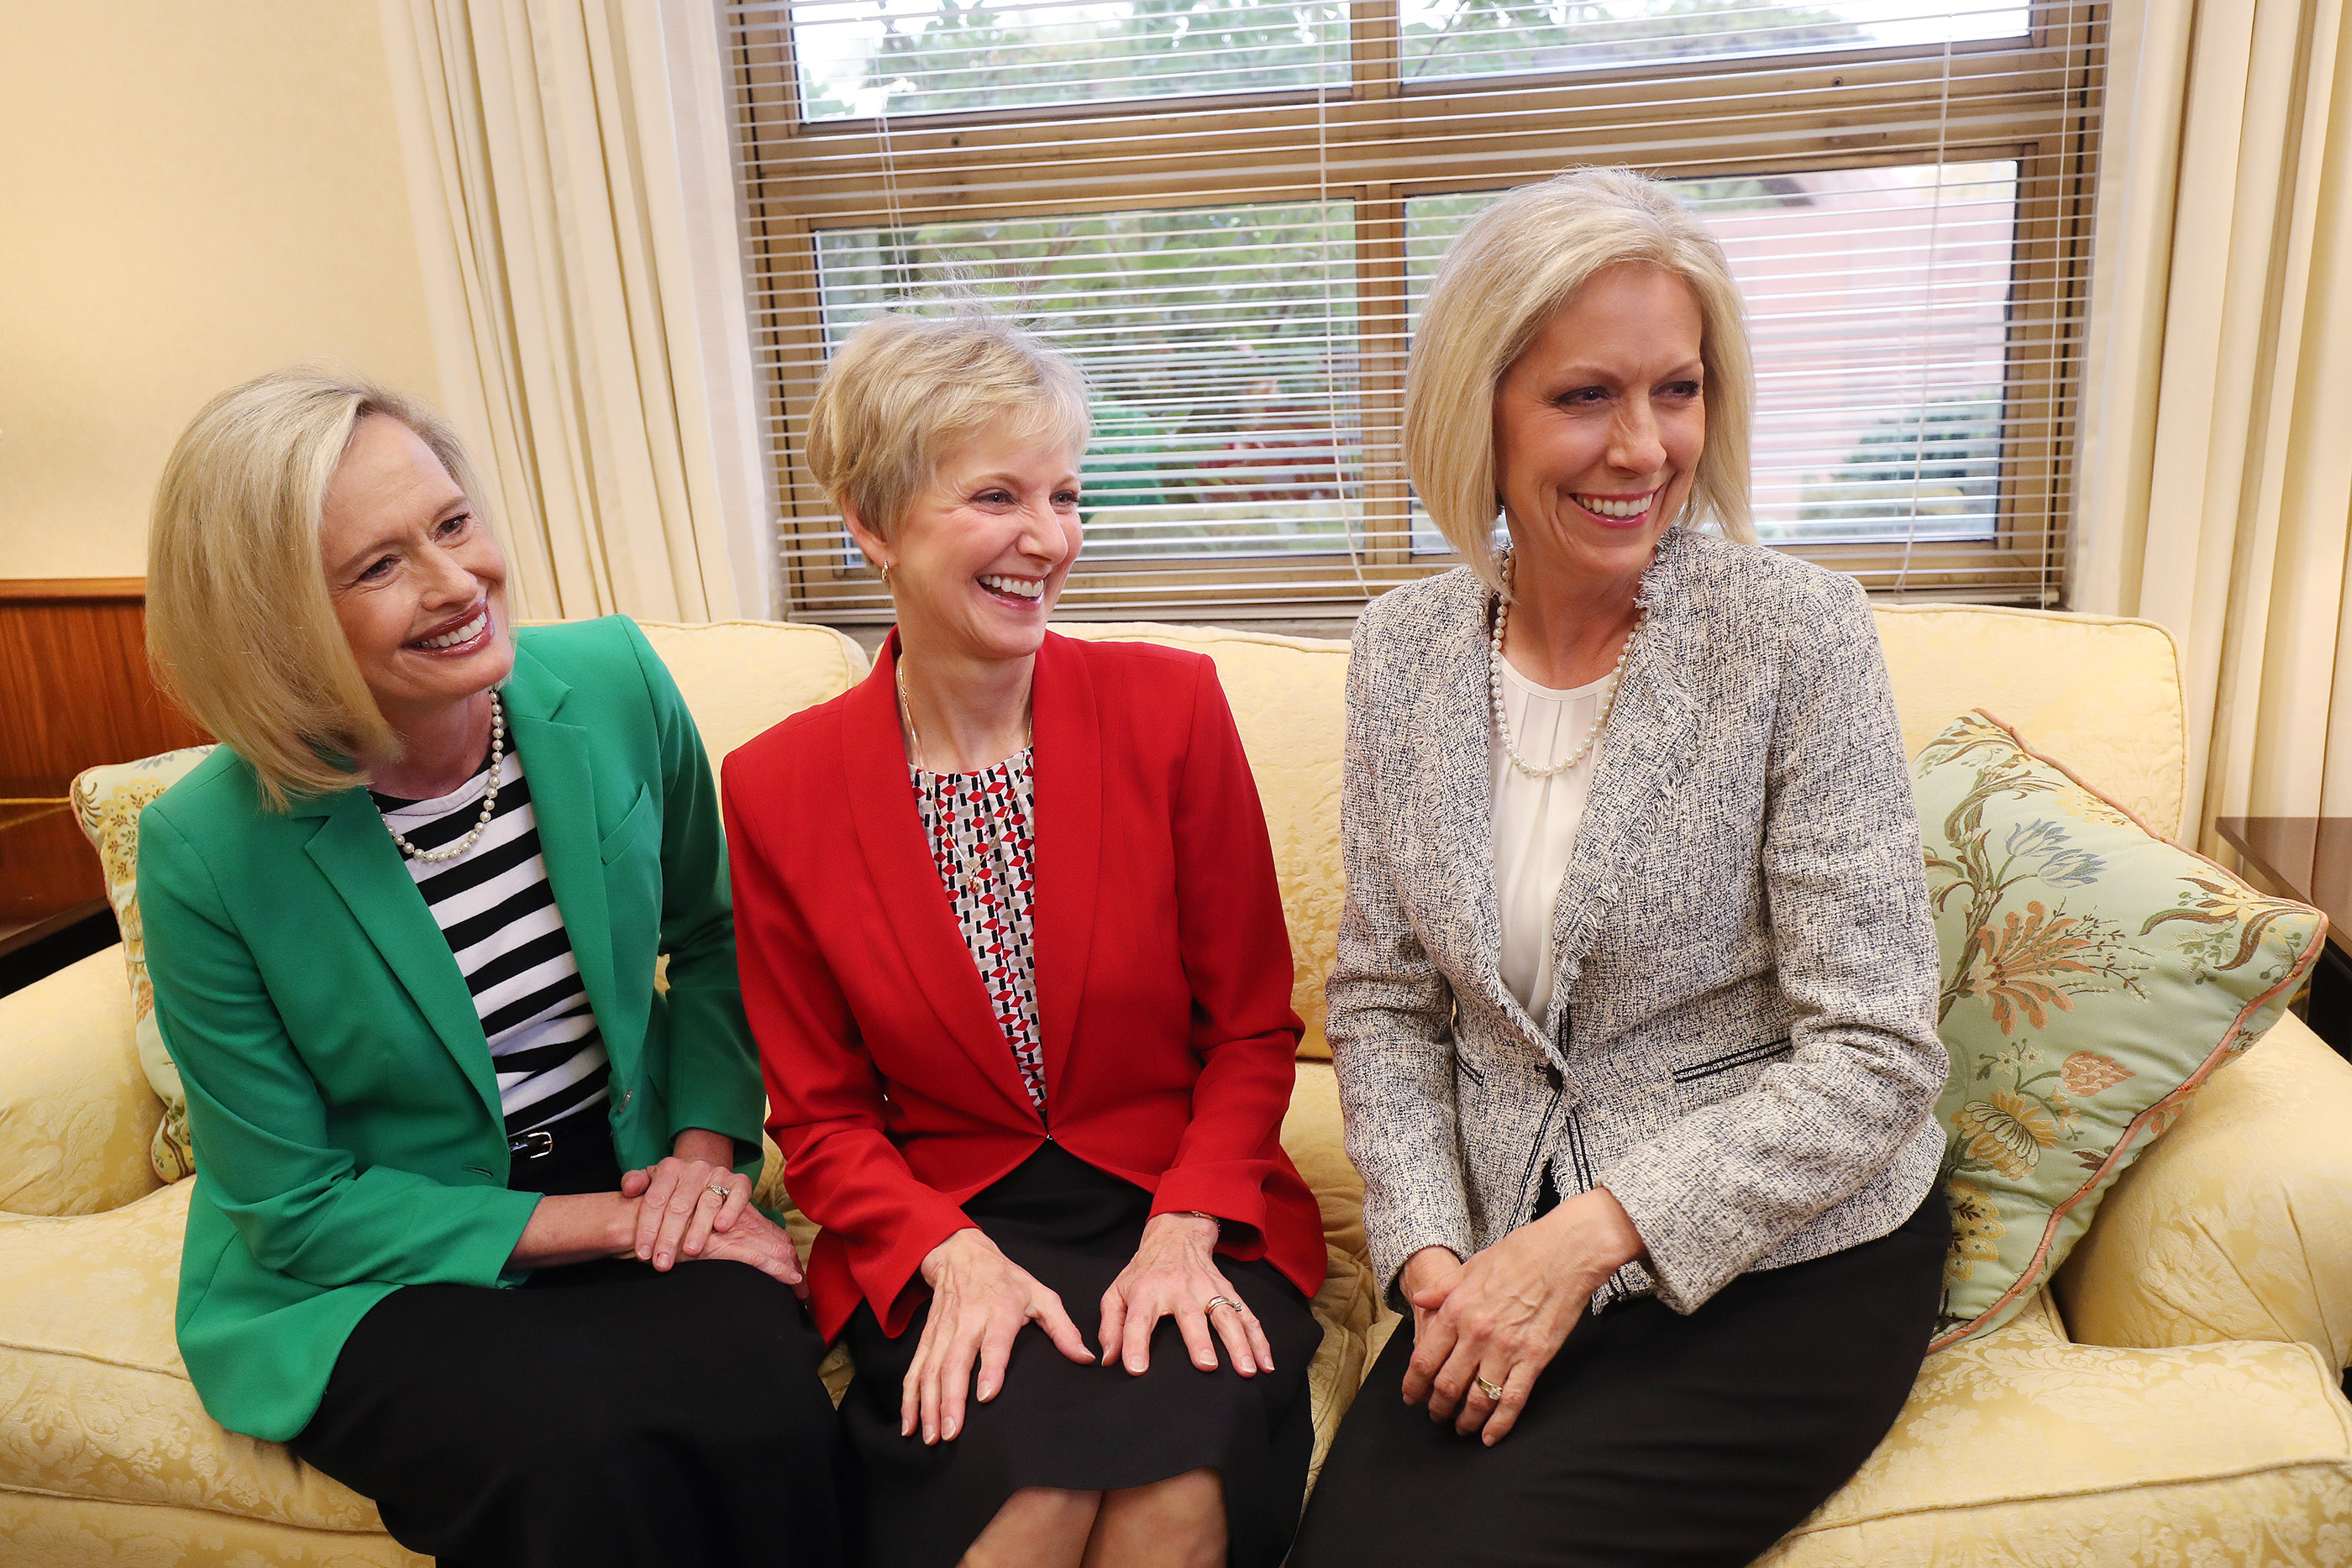 Sister Jean B. Bingham, Relief Society general president, Sister Bonnie H. Cordon, Young Women general president and Sister Joy D. Jones, Primary general president meet in Salt Lake City on Sept 4, 2018. They will answer questions in the first ever Sister-to-Sister event held on May 3, 2019.